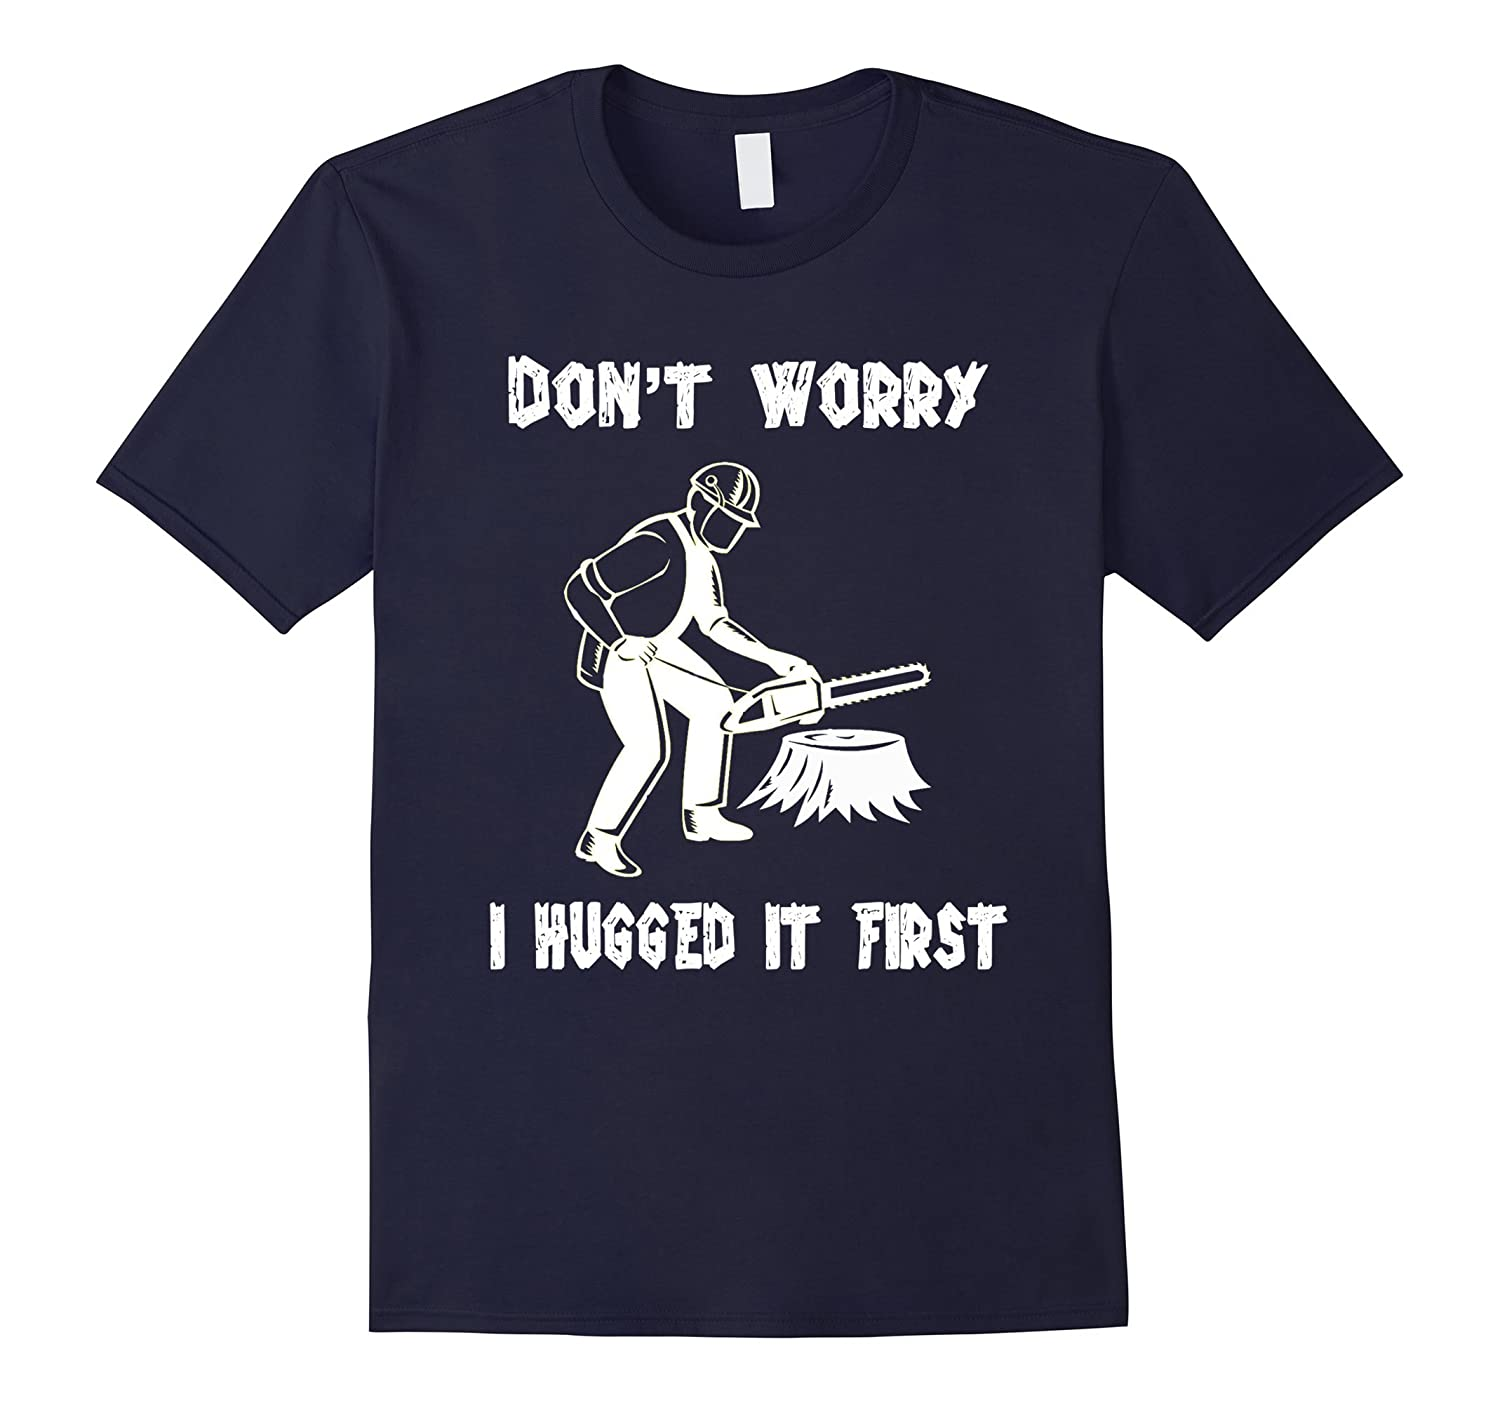 Don't worry i hugged it first t-shirt- Funny Gift for Logger-TH